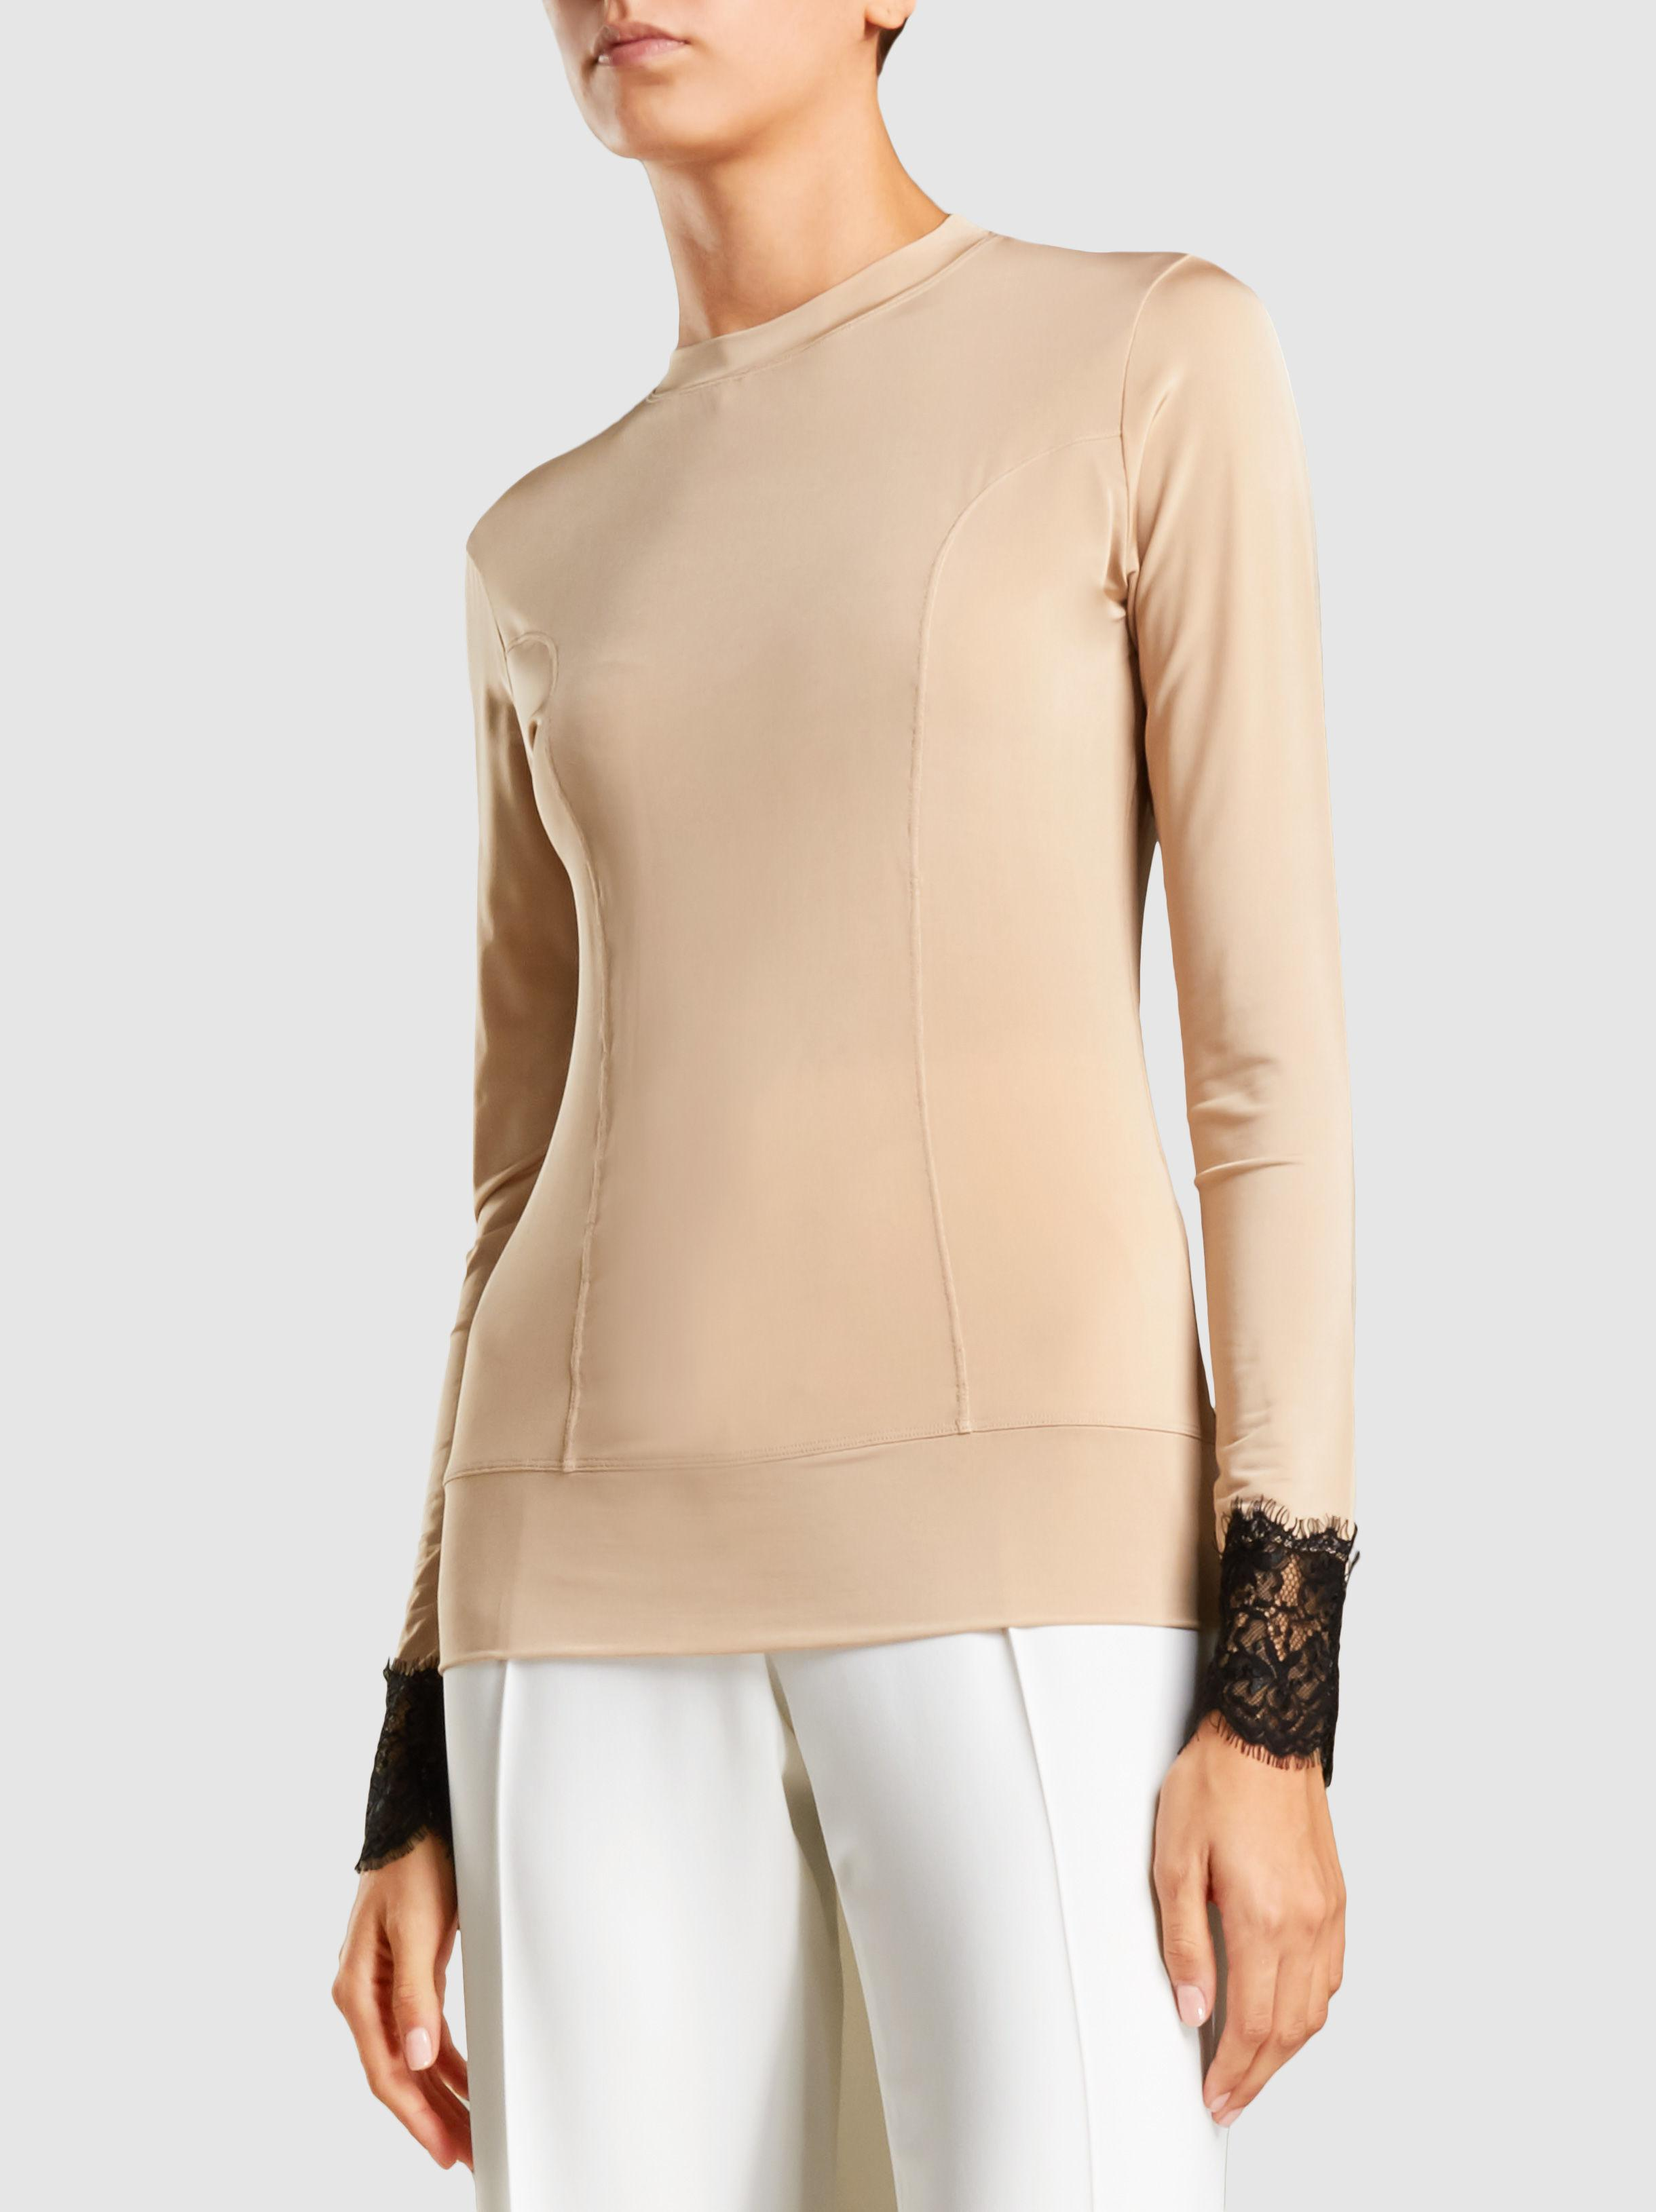 Ganni Long-Sleeved Lace Cuff Top Low Price For Sale Outlet New Styles WZPQoQS3